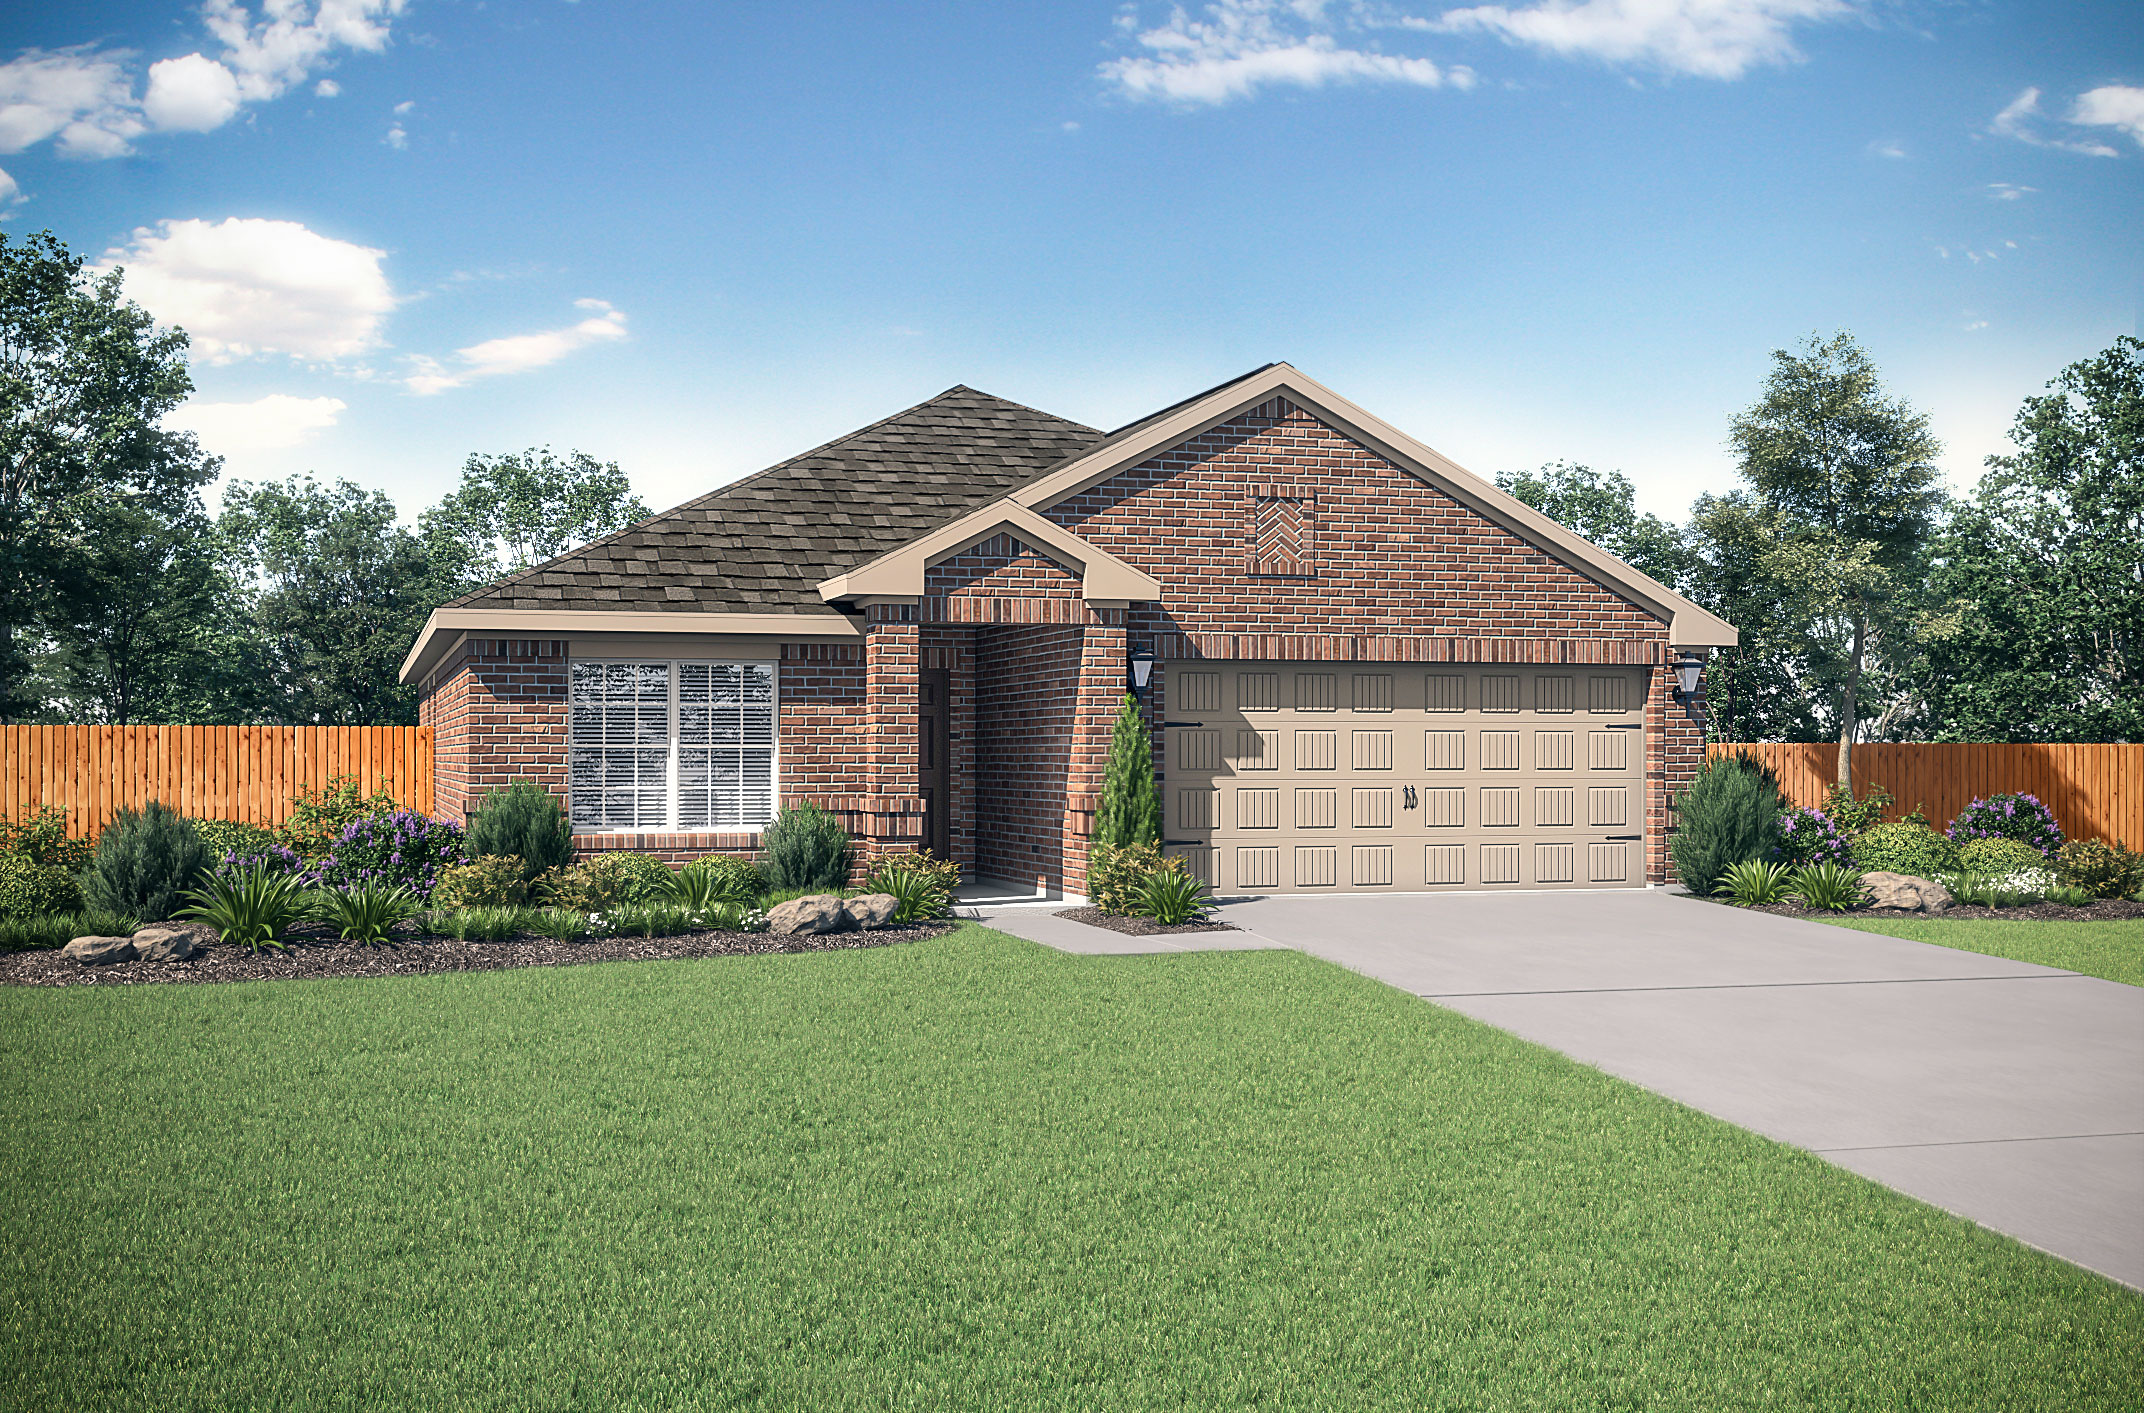 The Blanco plan at Vacek Country Meadows by LGI Homes